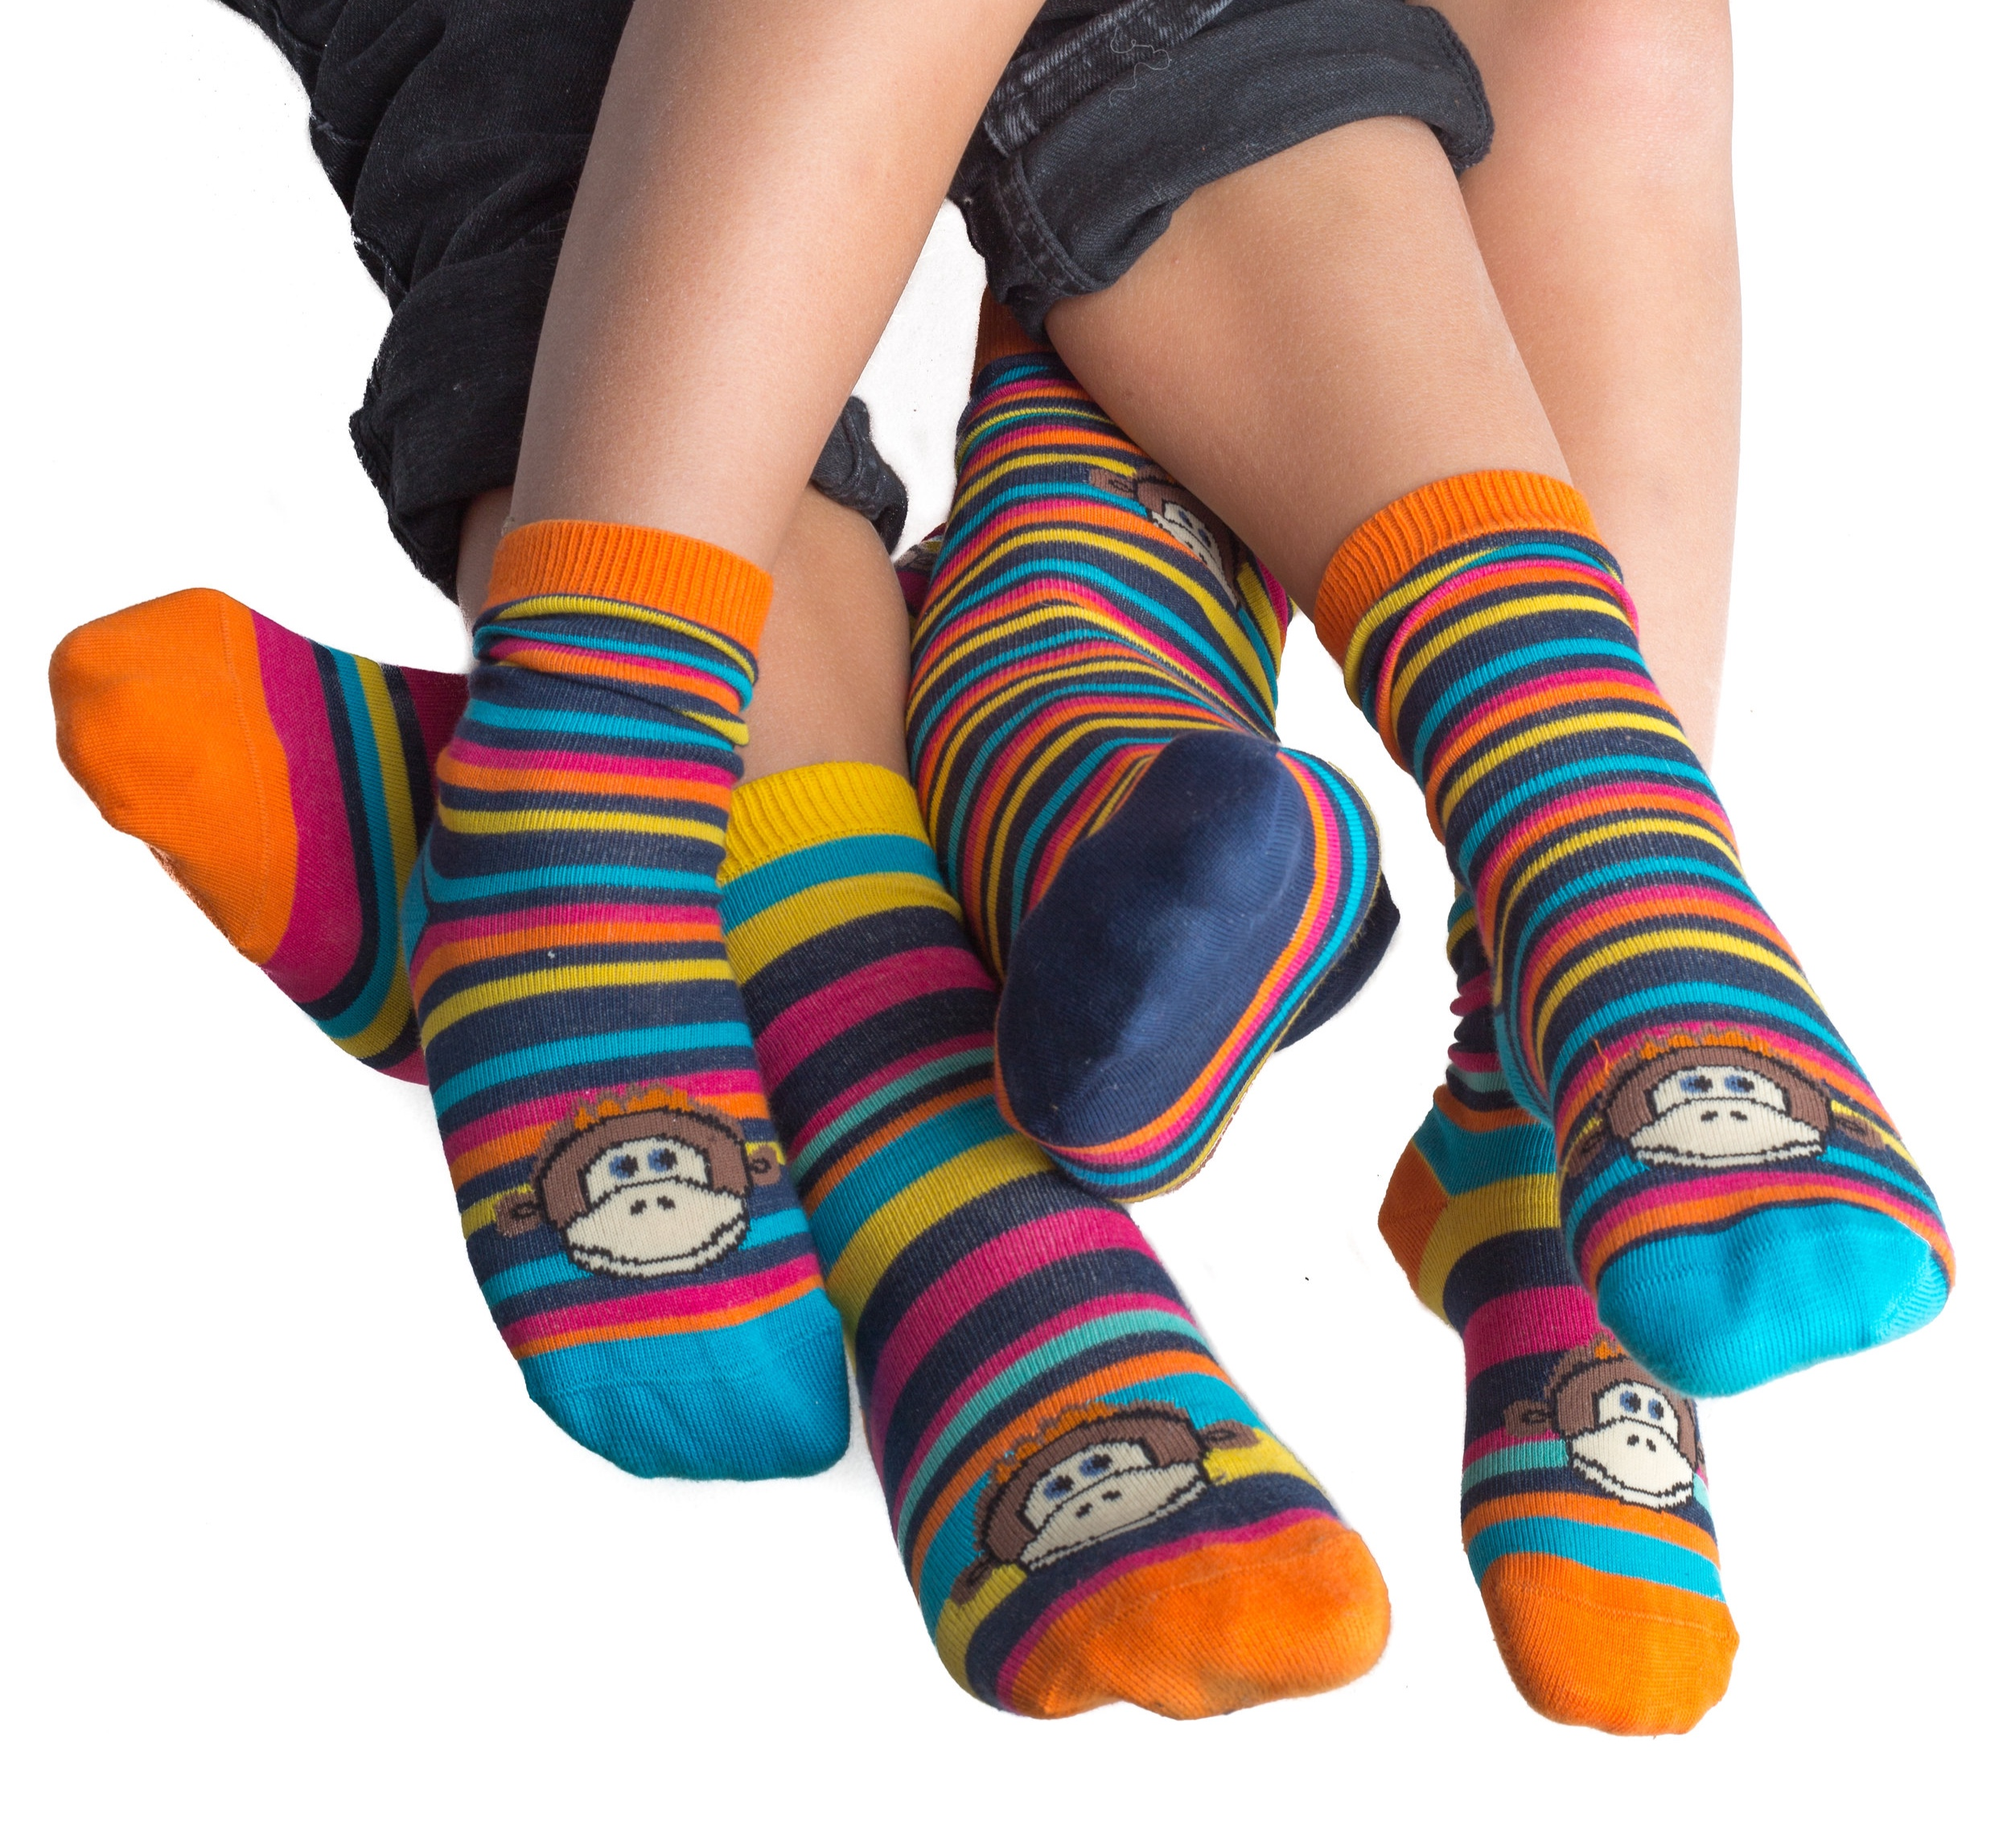 OPENING CONVERSATIONS - More than 100,000 people in the UK are living with Multiple Sclerosis and it affects each person differently. We are committed to raising awareness about MS and we know that Mr Monkey Sox makes talking about MS easier.